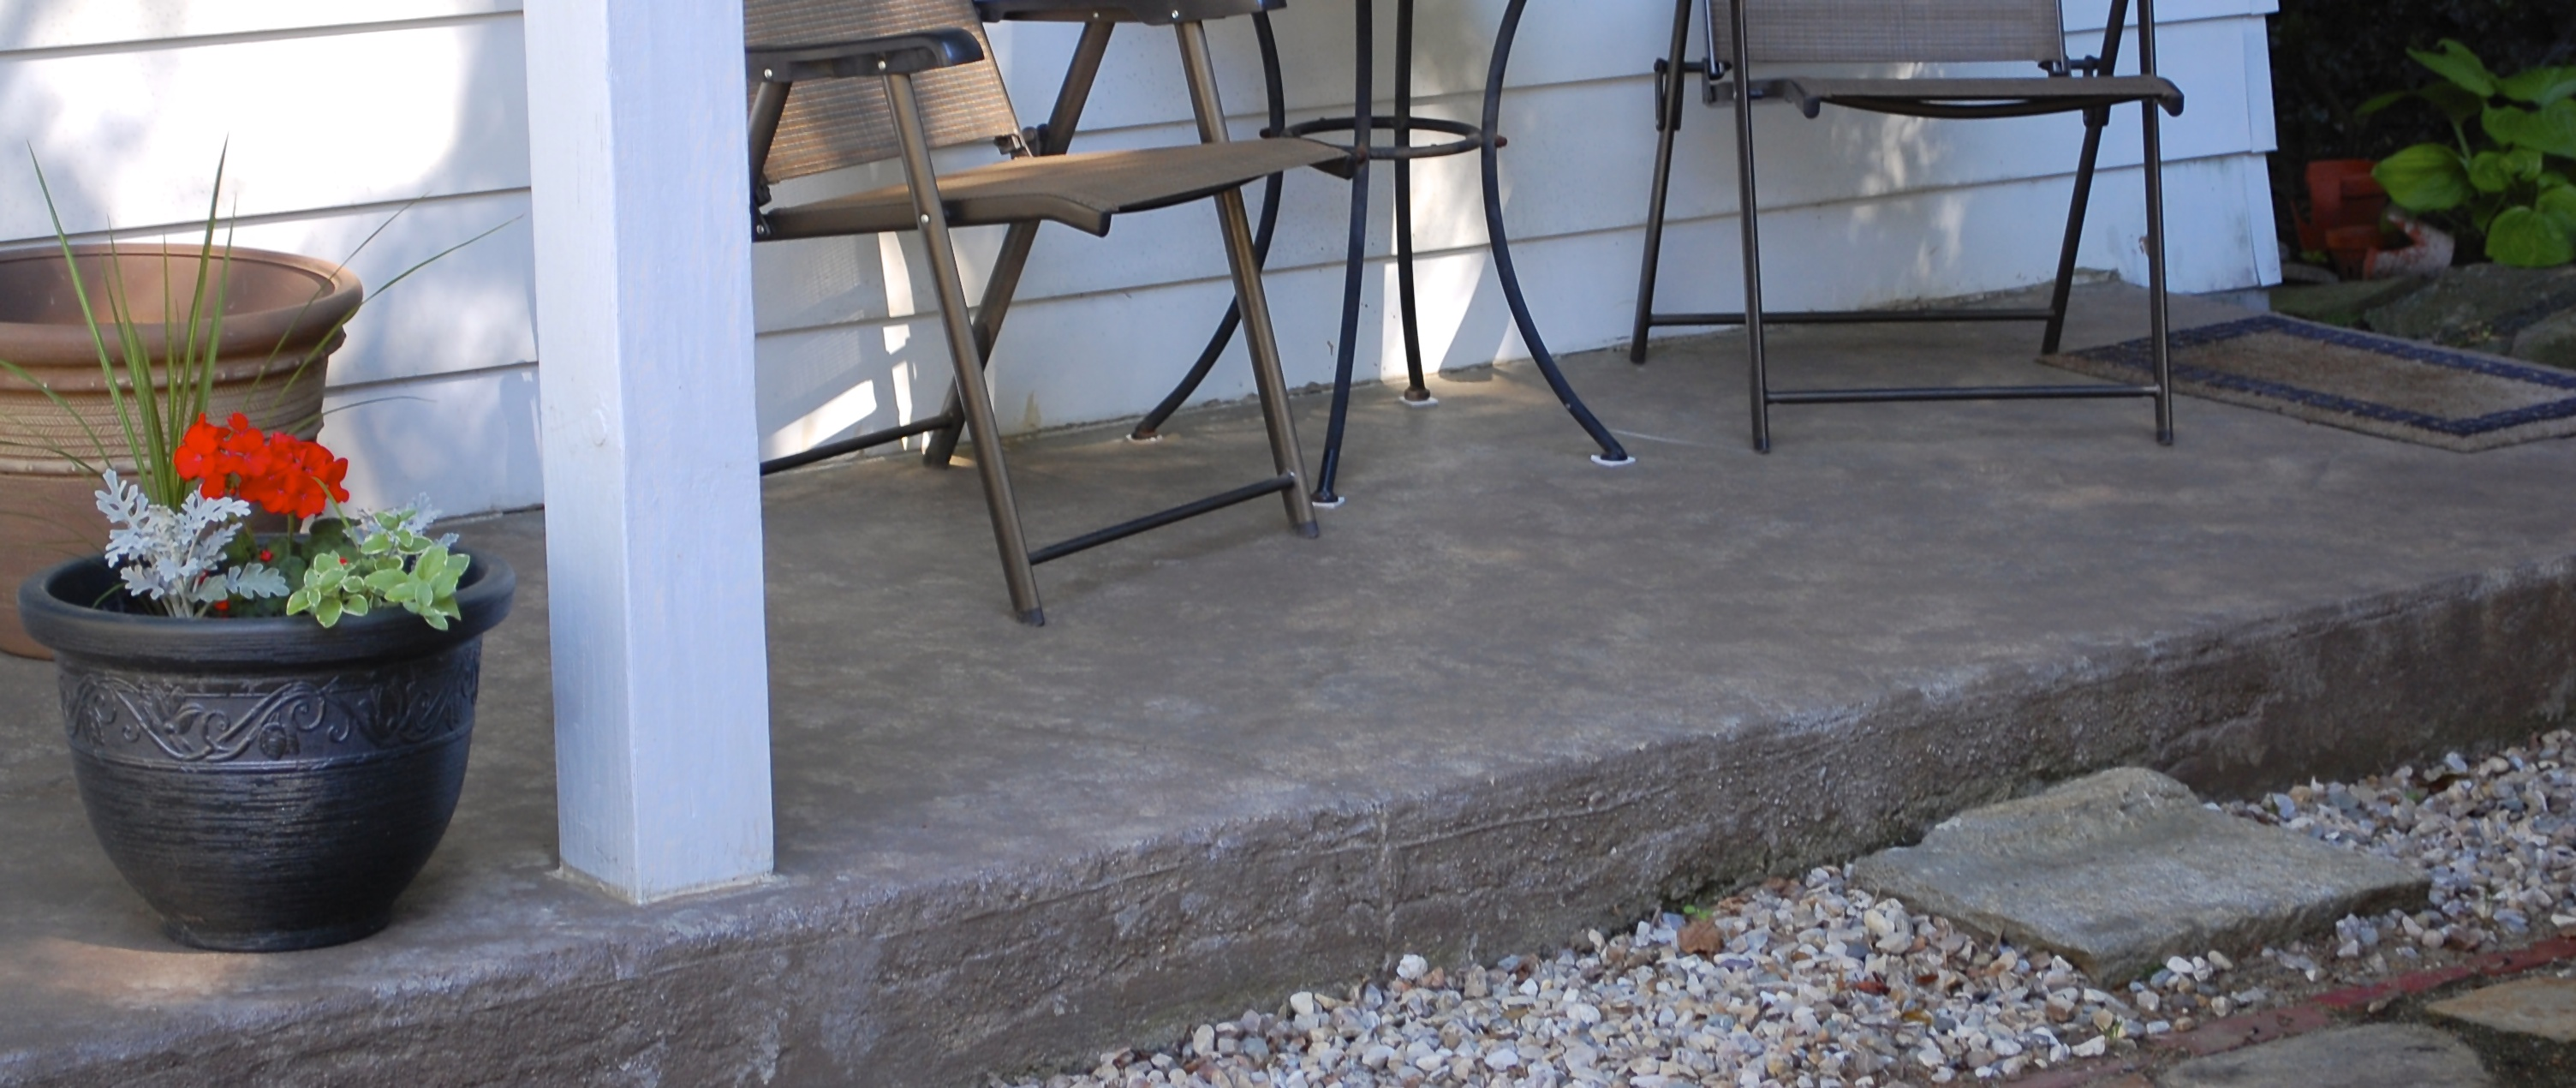 How to revive a concrete patio with stain fire pit life for Fire pit on concrete slab